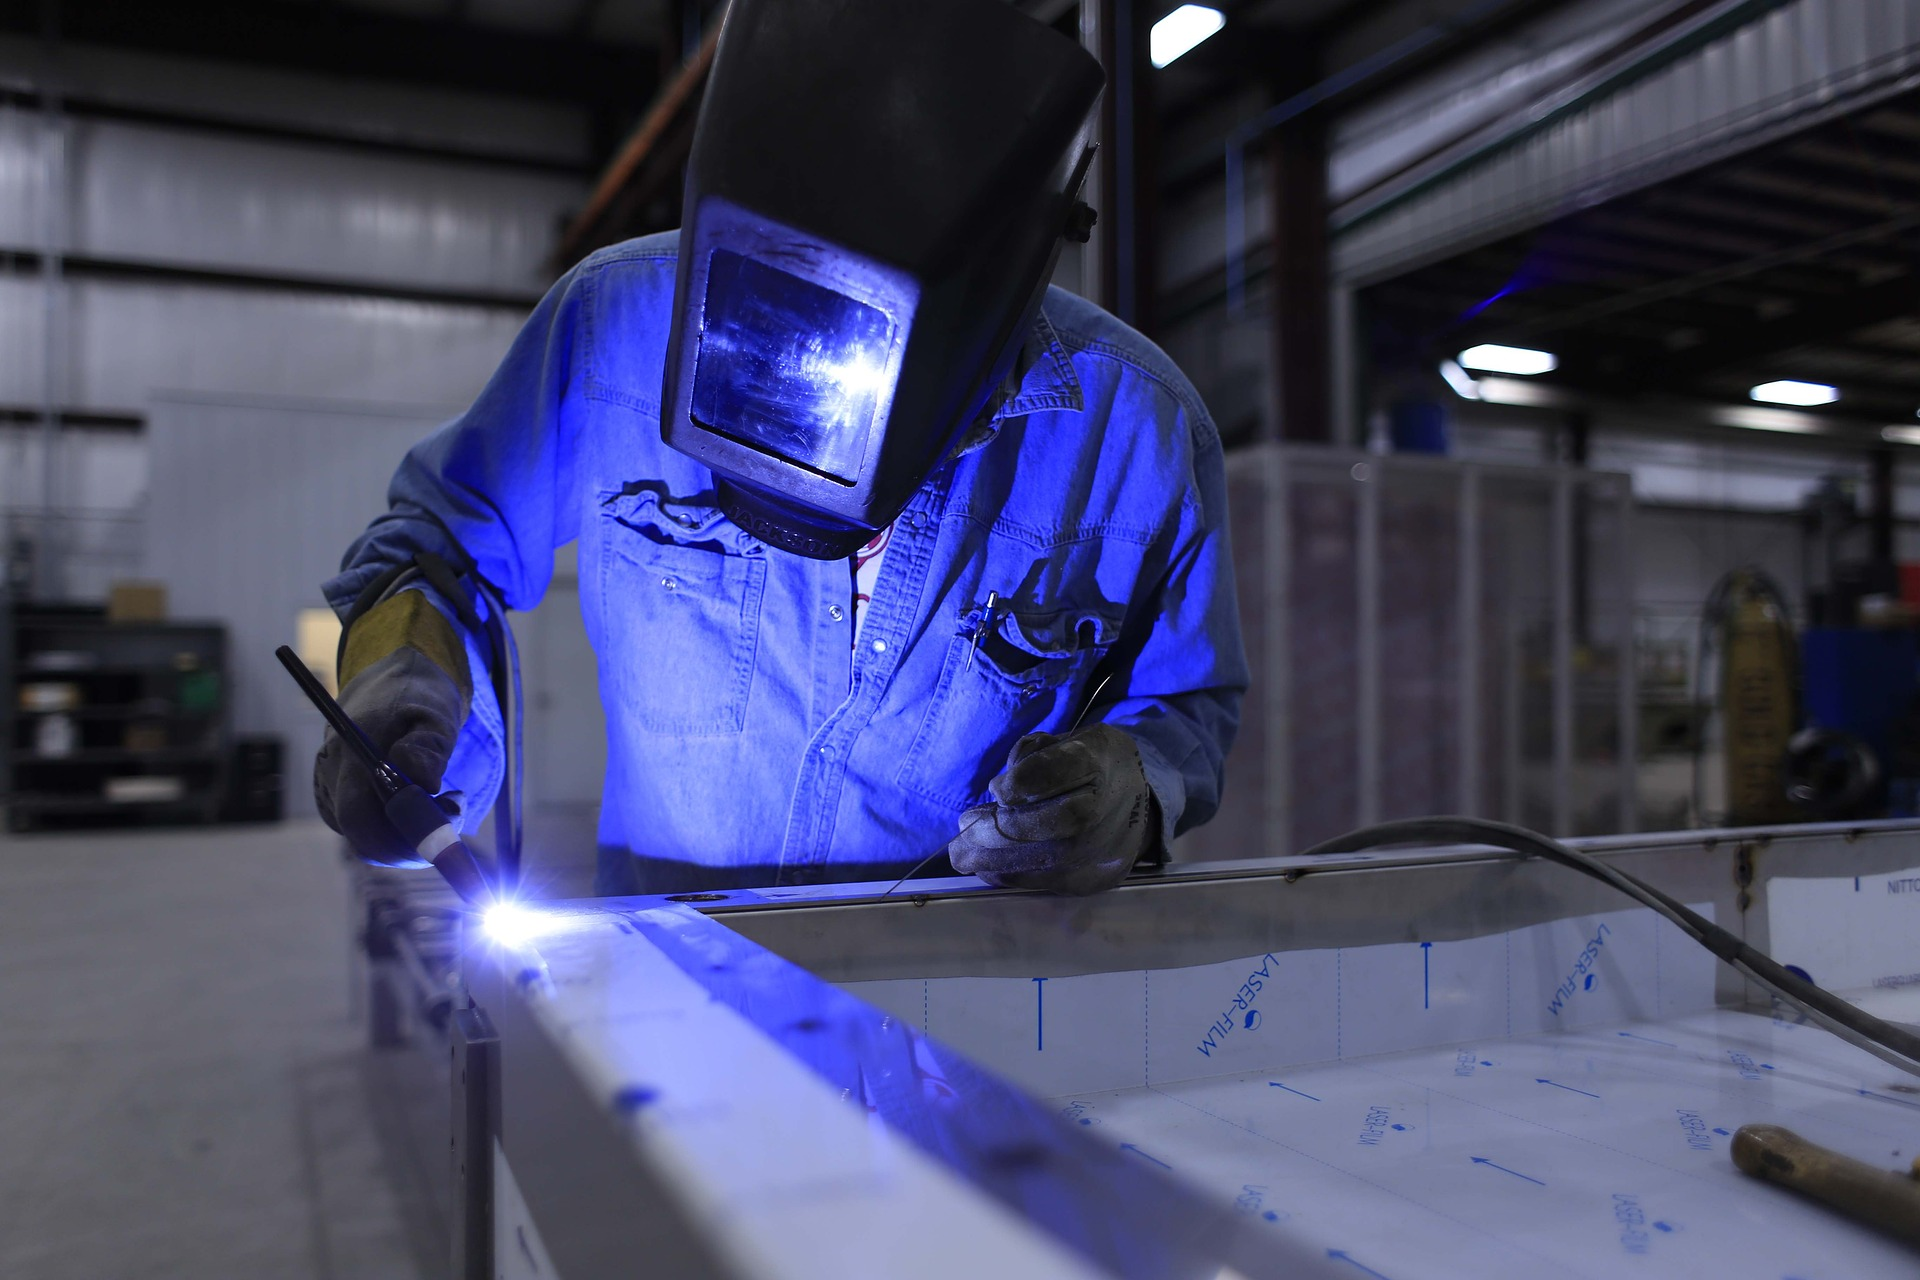 American Welder in Action